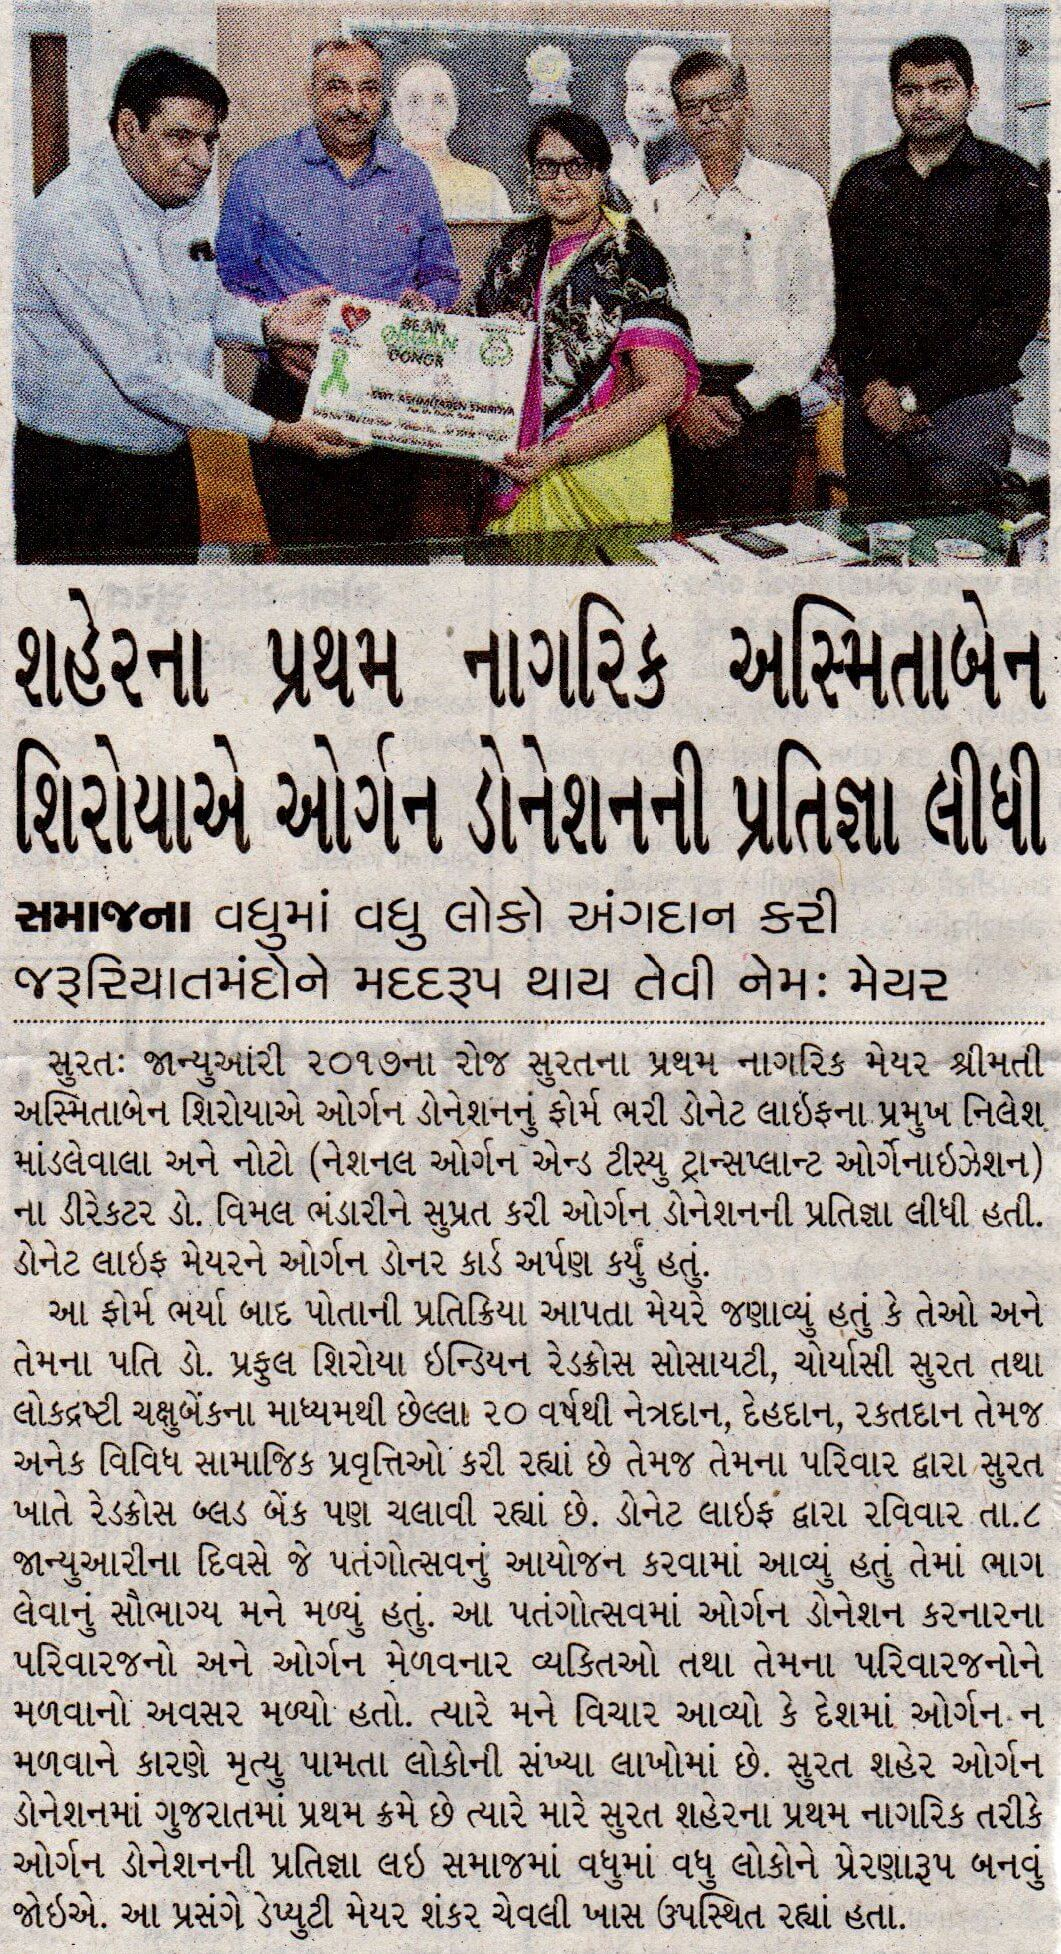 Surat Mayor Pladge Organ Donation